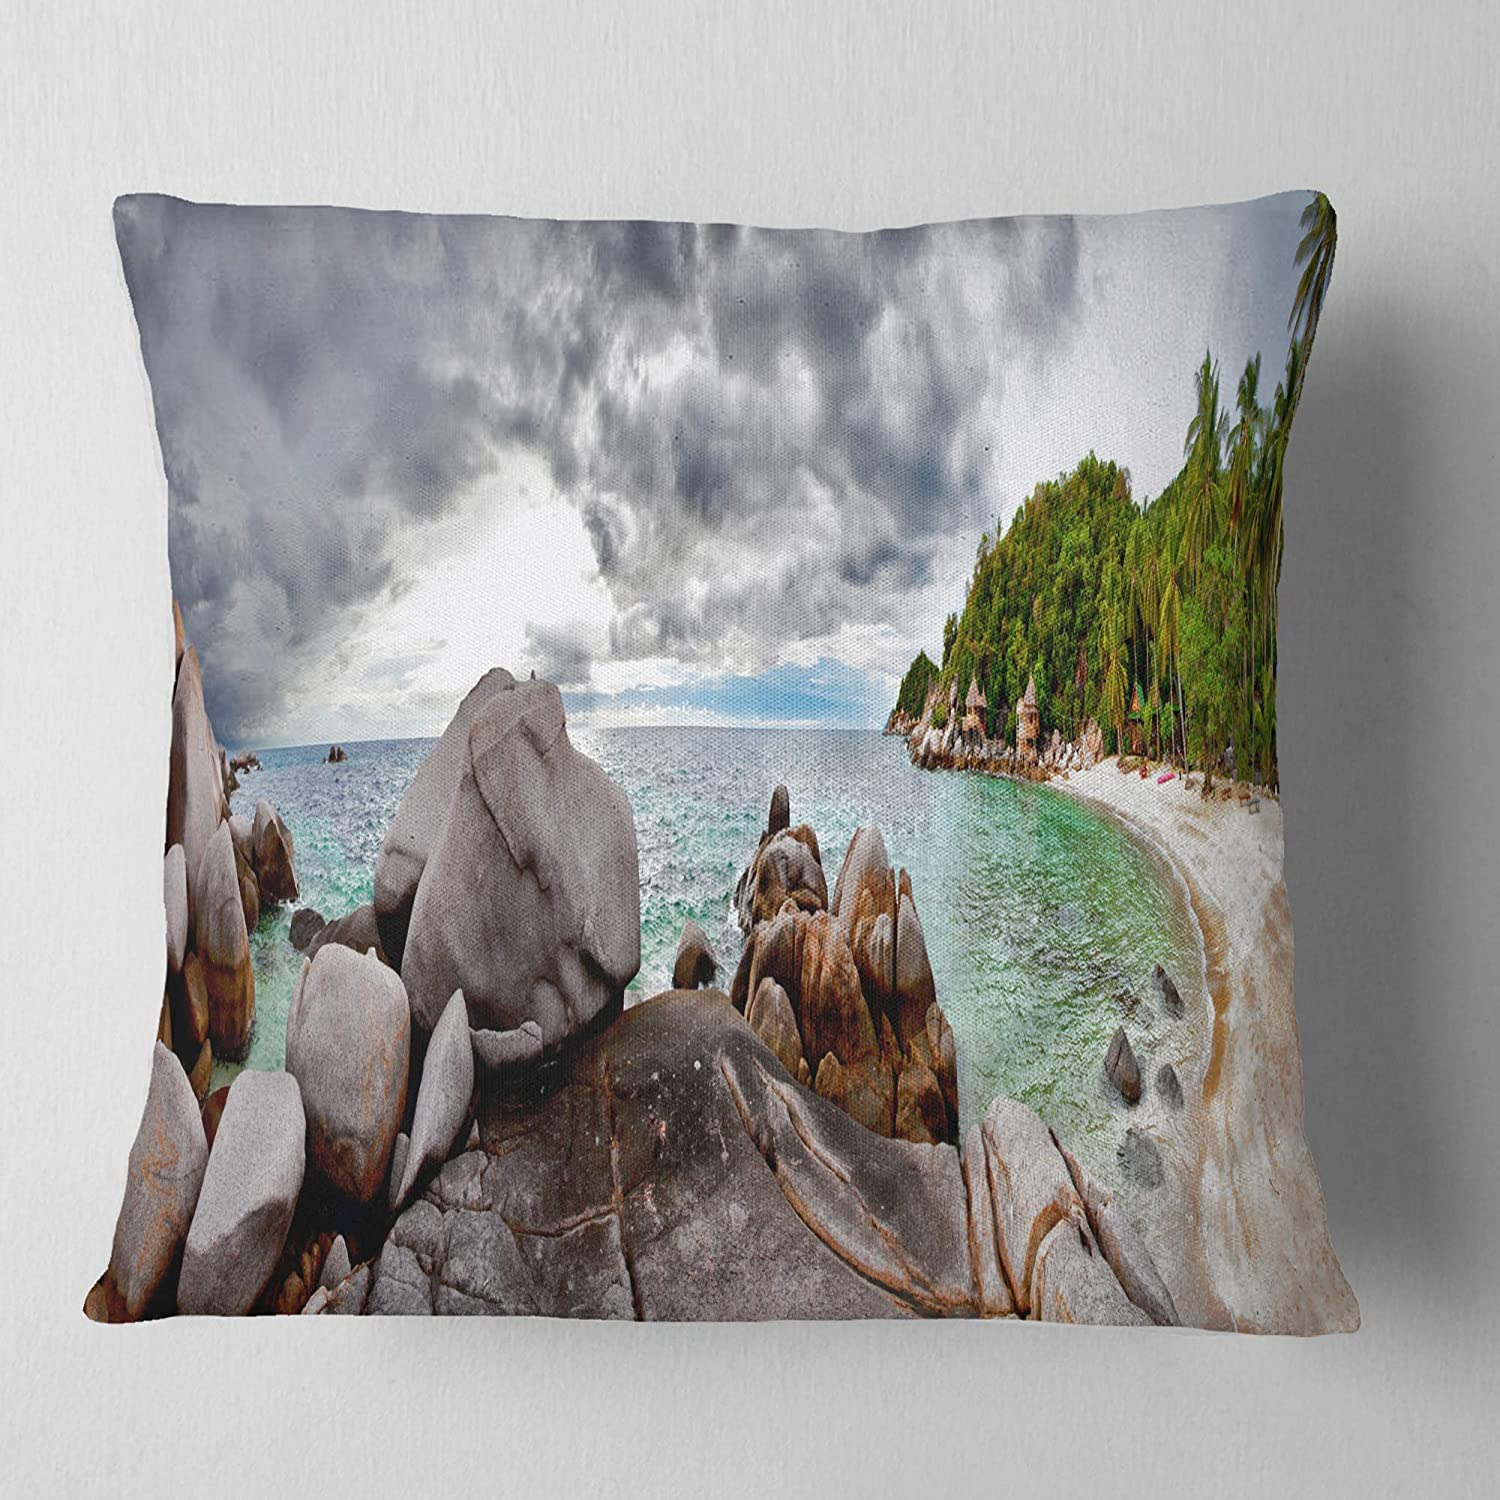 Designart CU11533-26-26 Exotic Tropical Beach Under Blue Sky' Modern Seascape Cushion Cover for Living Room, Sofa Throw Pillow 26 in. x 26 in. in, Insert Printed On Both Side